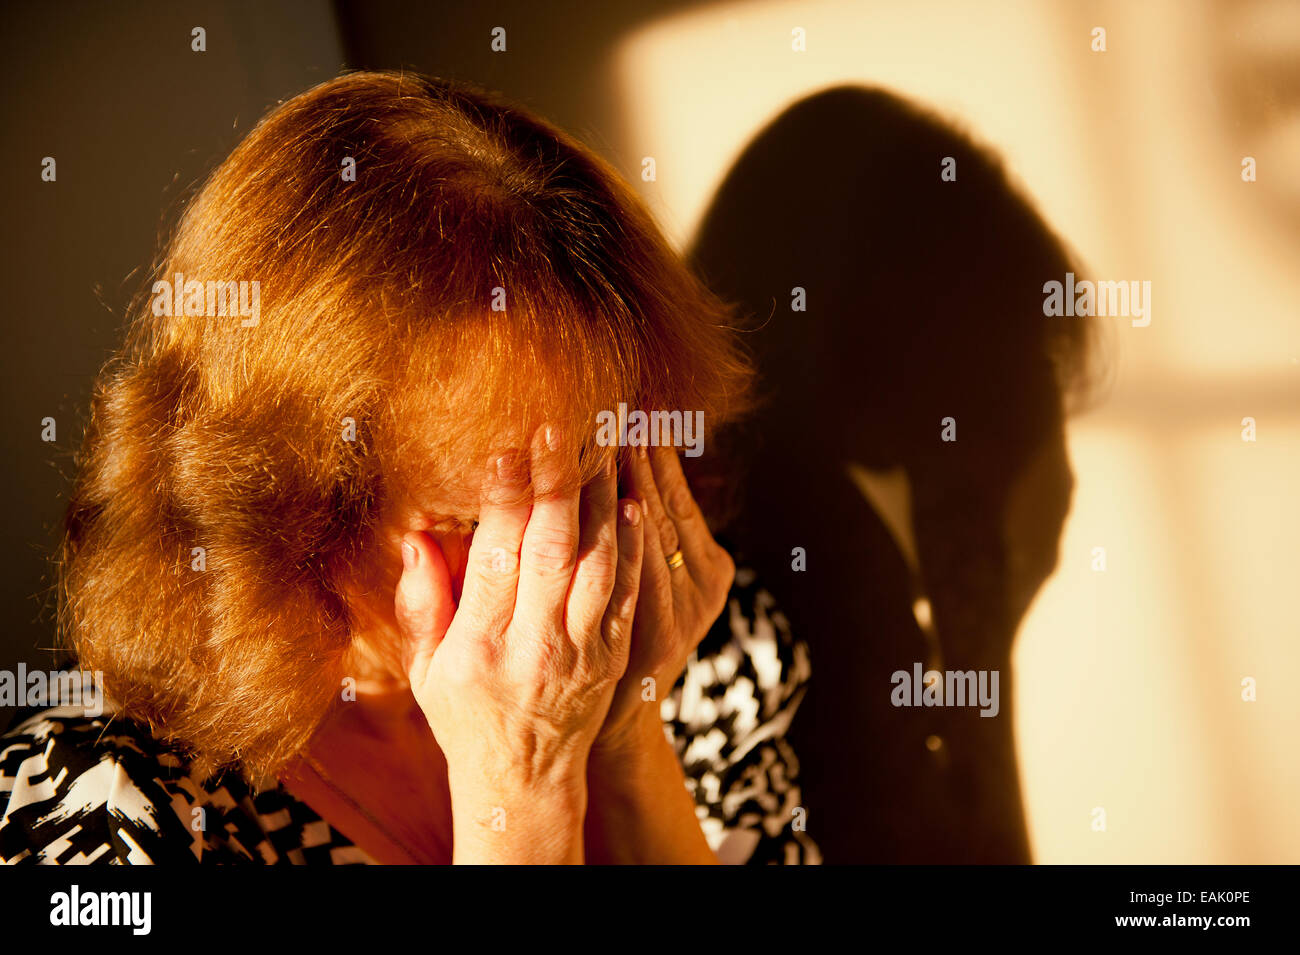 Tearful woman covering her face with both hands. - Stock Image